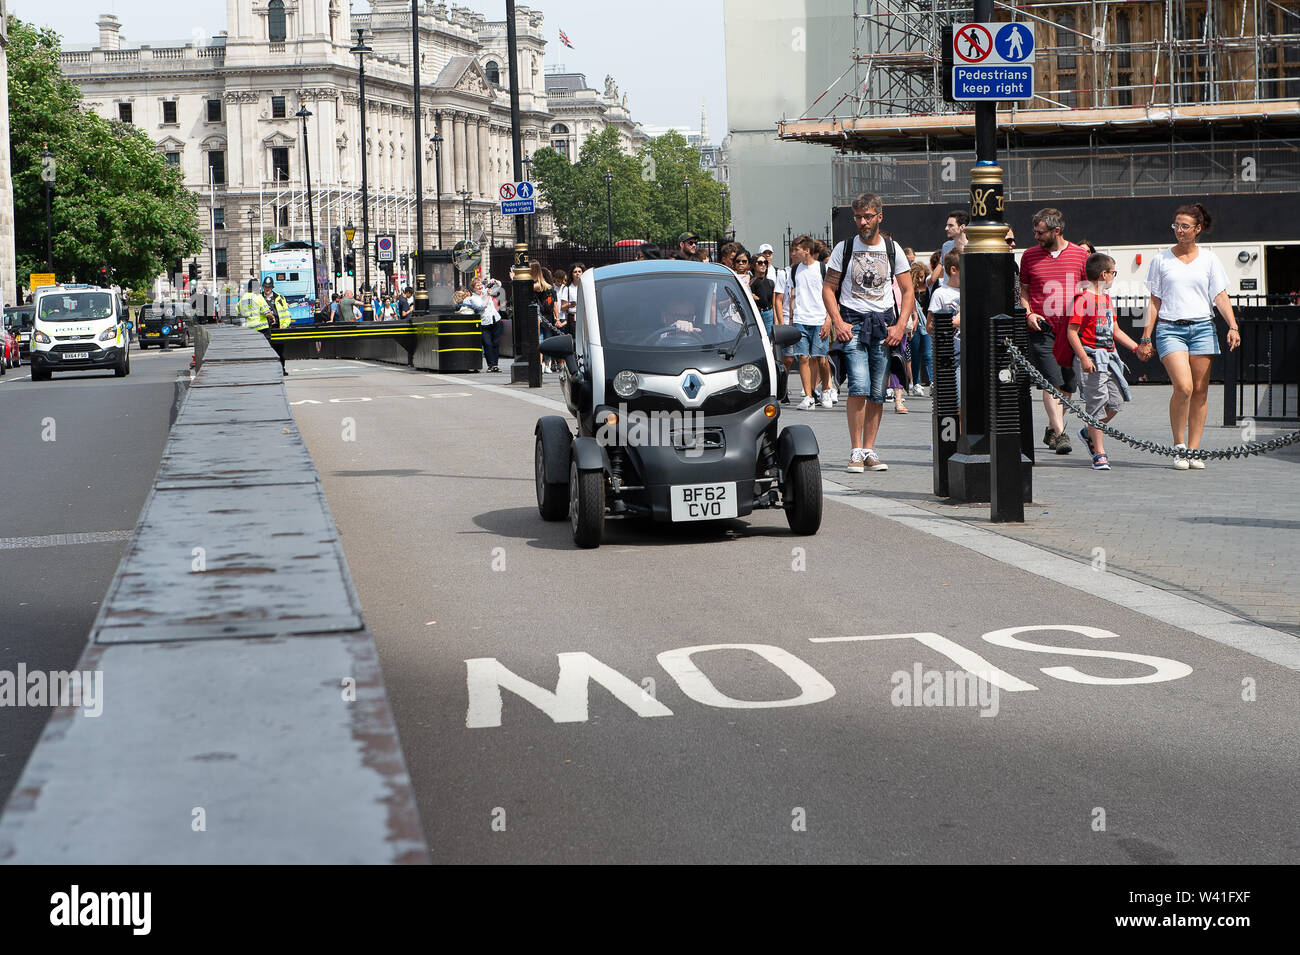 A man drives a small vehicle into the Palace of Westminster, London, UK. 17th July, 2019. A man drives a small four wheel vehicle into the Palace of Westminster along the road marked slow. Credit Maureen McLean/Alamy - Stock Image